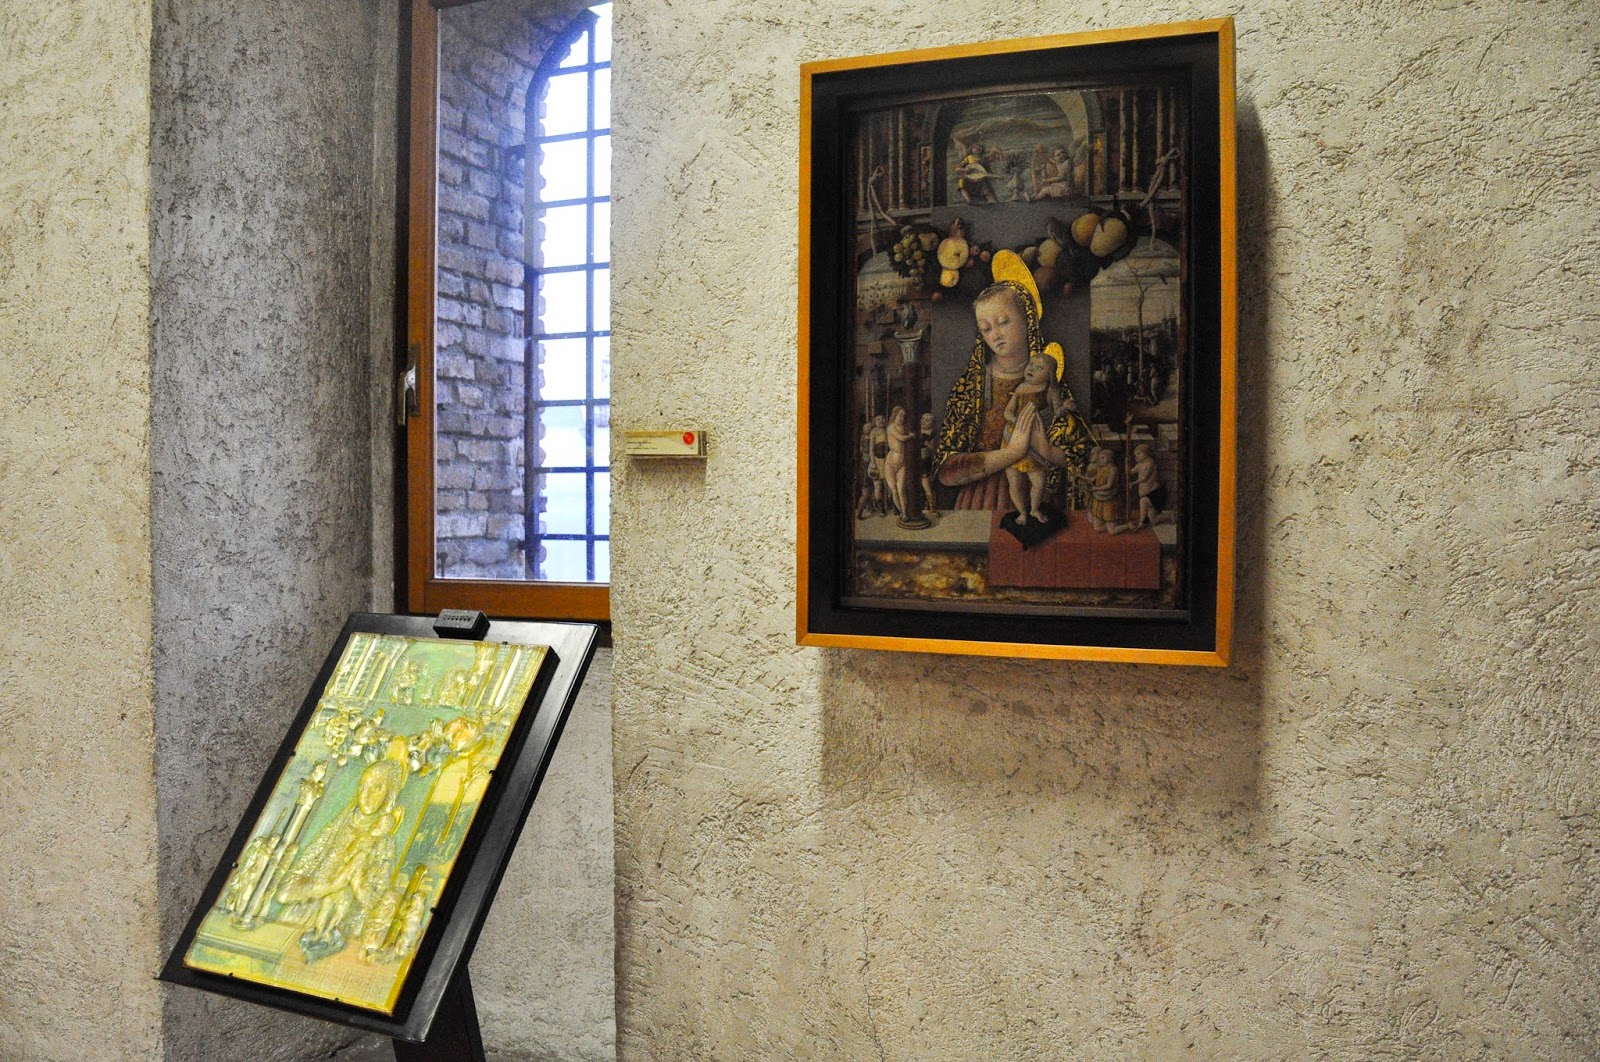 A painting and its representation in embossed glass for the visually impaired in the Museum of Castelvecchio in Verona